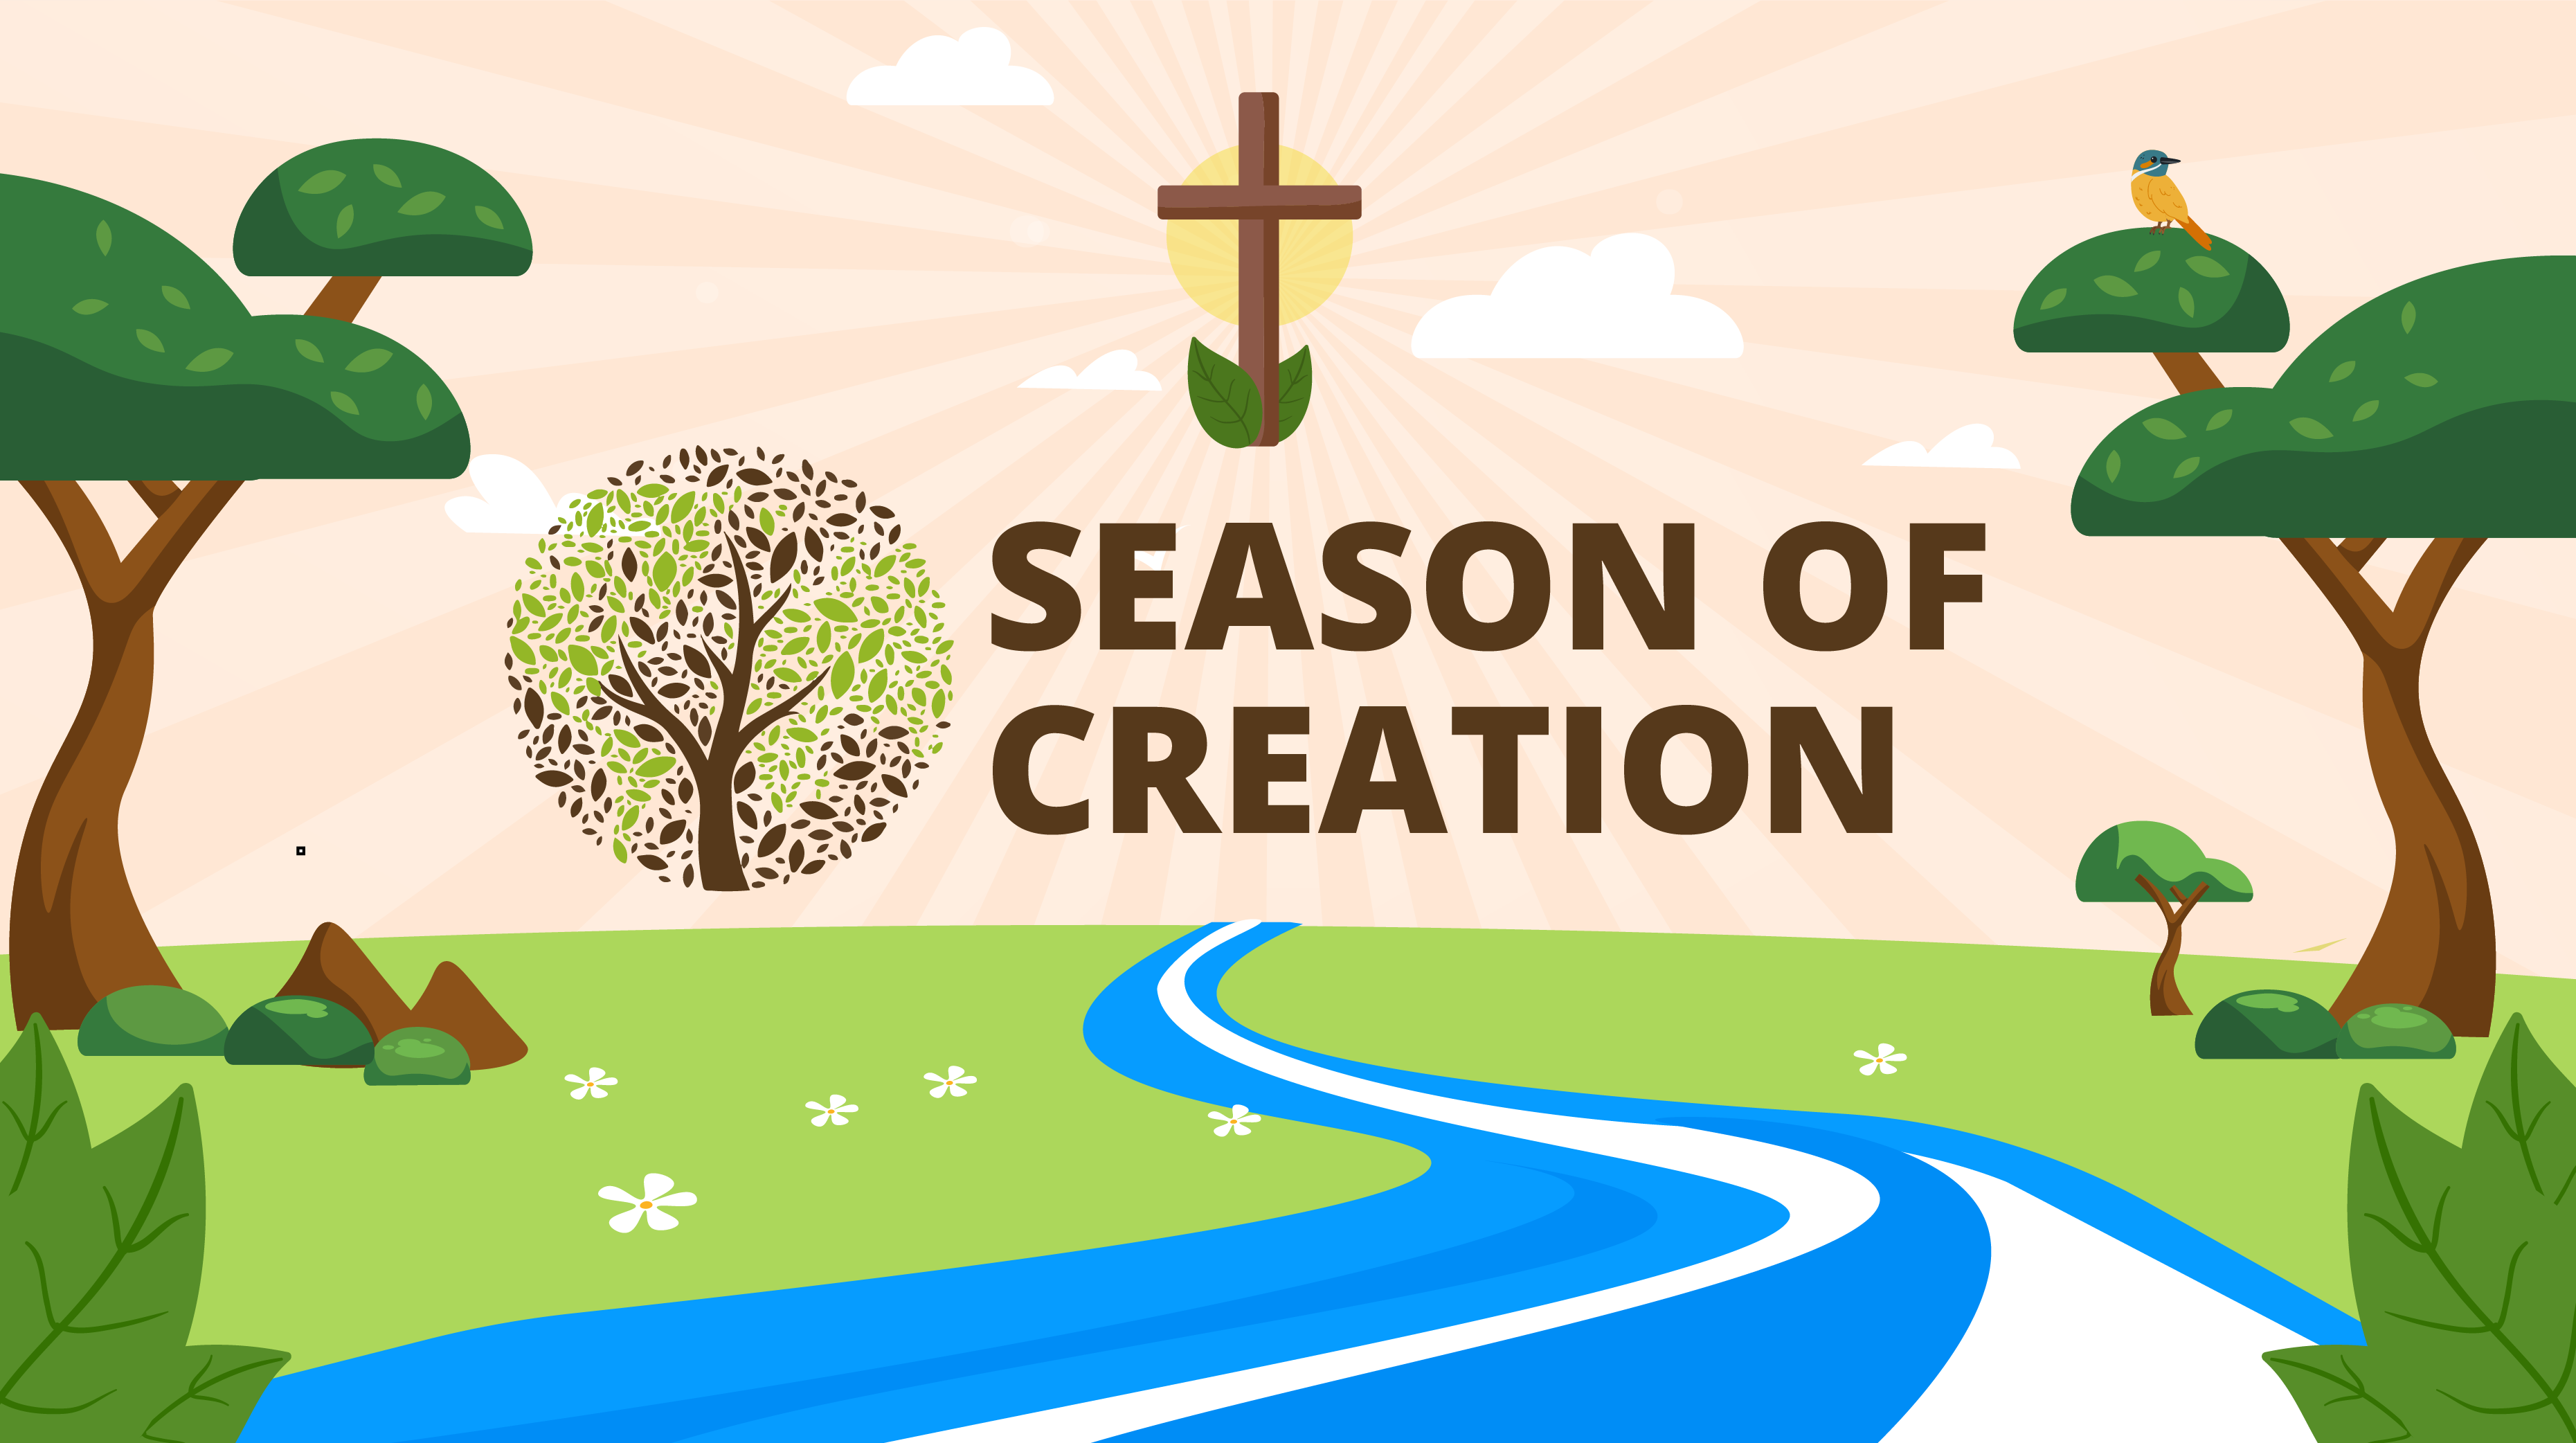 Resources for the Season of Creation 2020